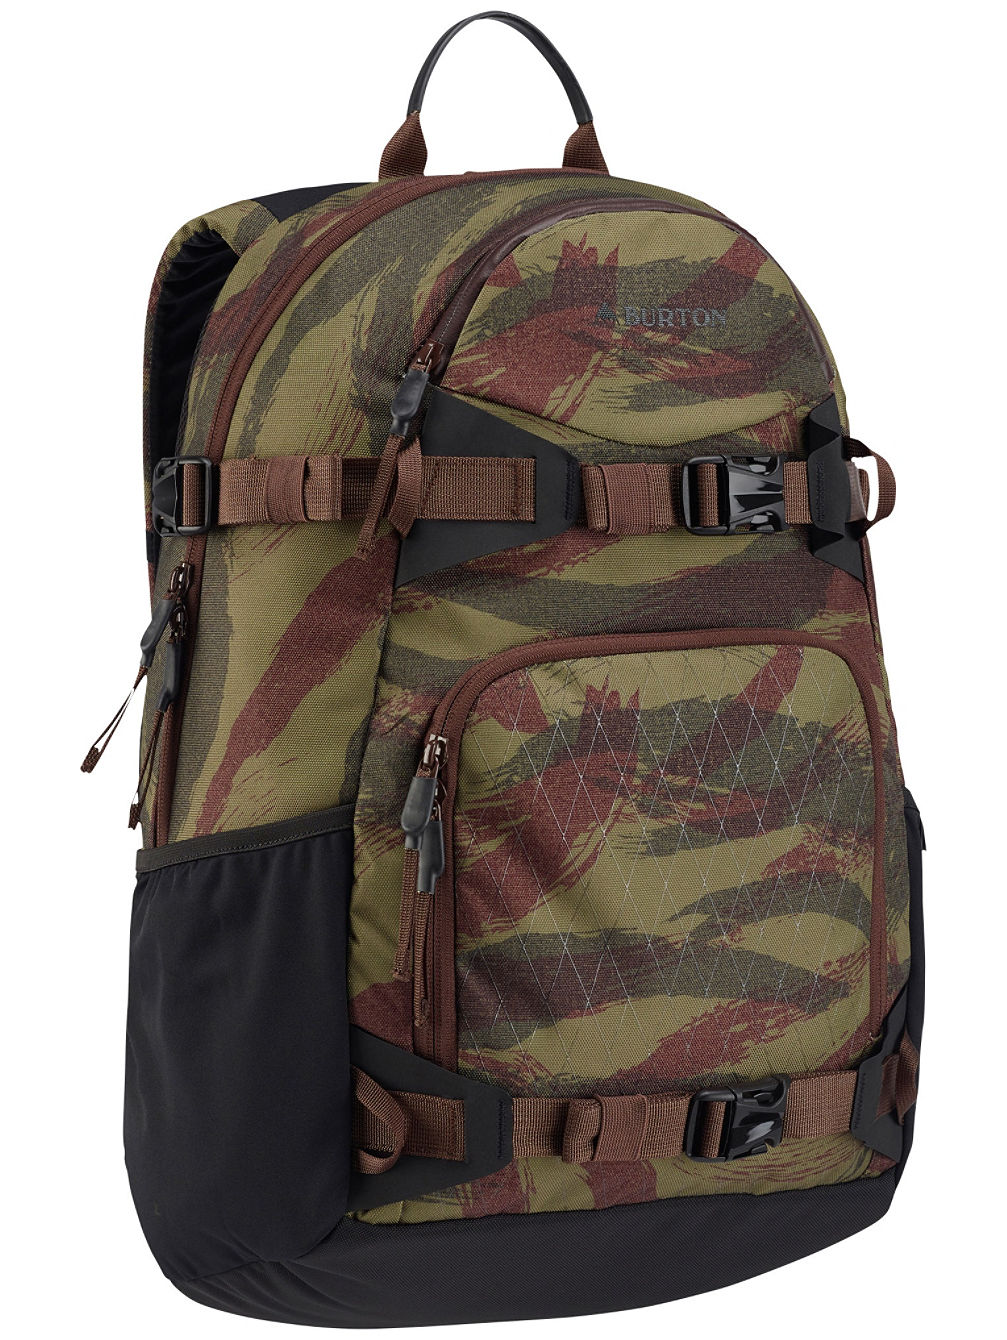 Riders Pack 25L Backpack